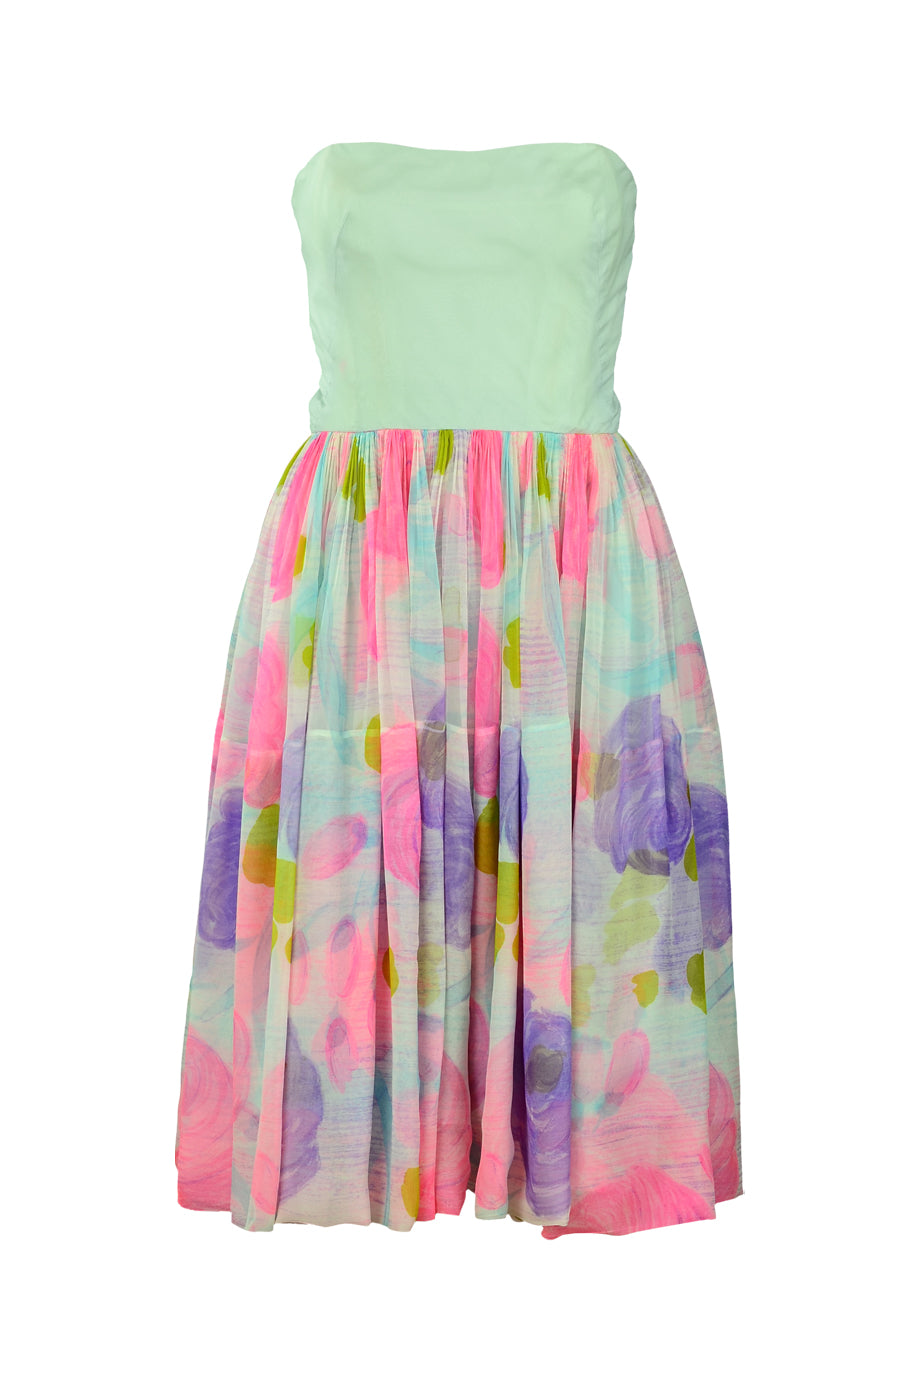 Soft pastels floral dress